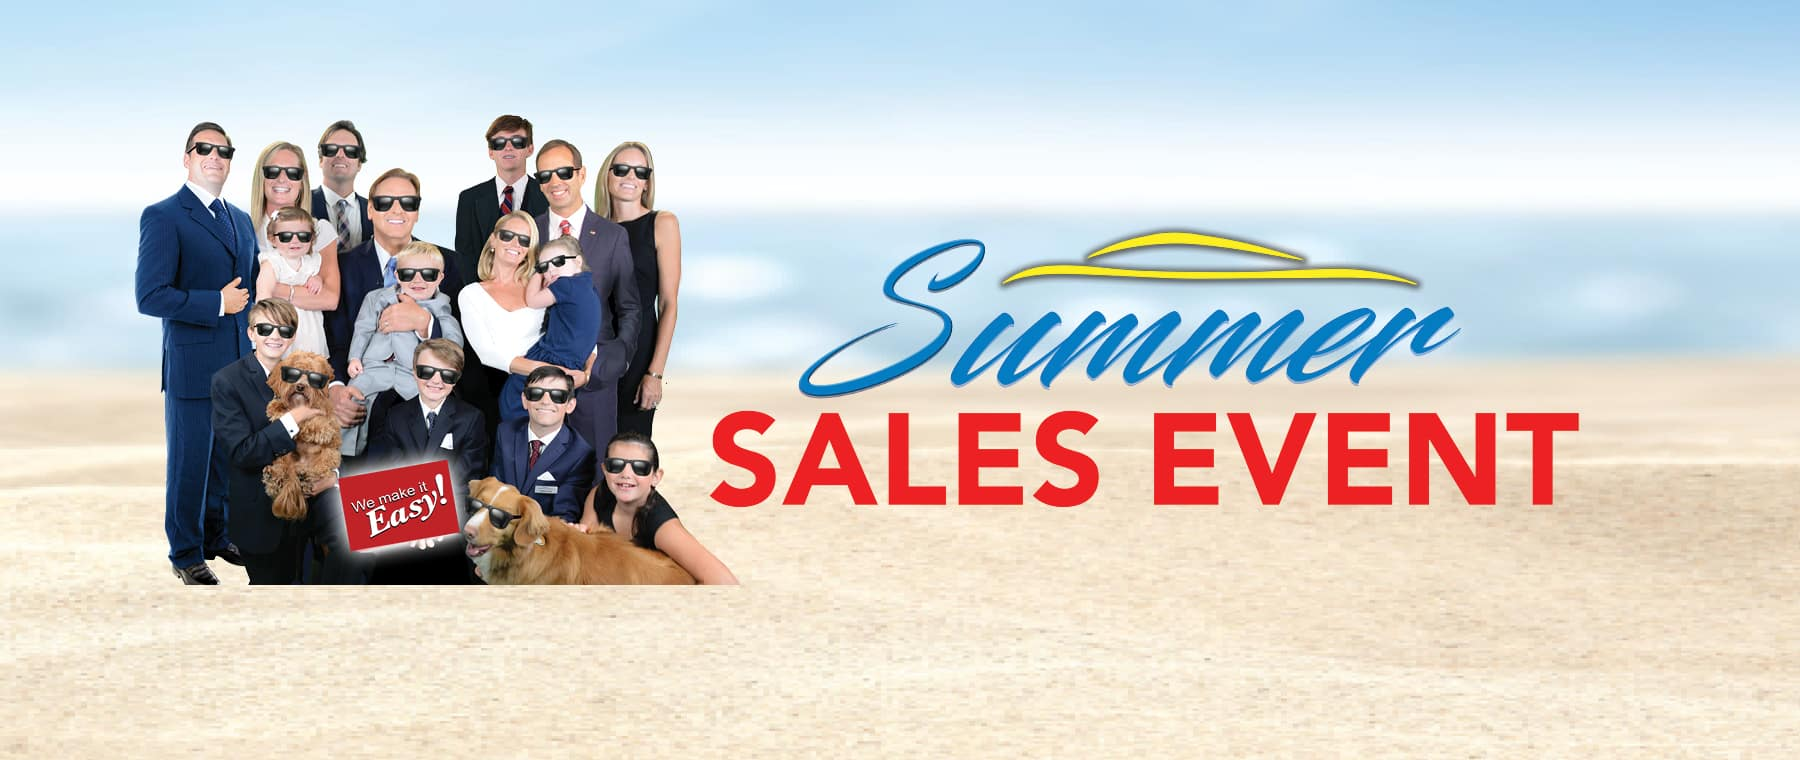 Summer Sales Event and Brian Kelly with Family Beach in Background